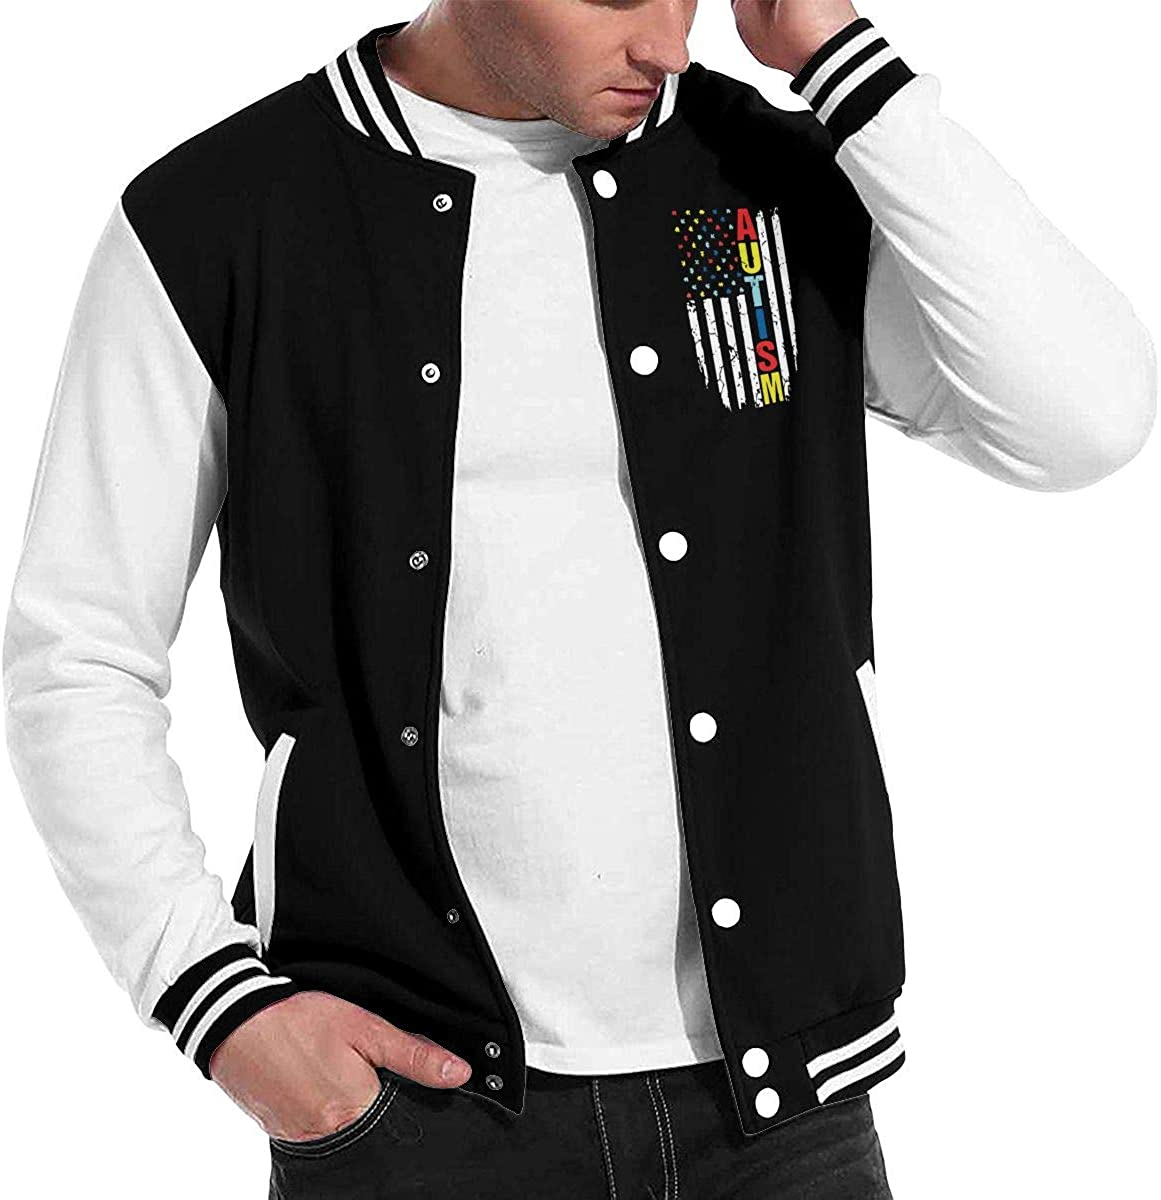 Men Women Varsity Premium Jacket Overcoat Autism Awareness American Flag Baseball Jacket Uniform